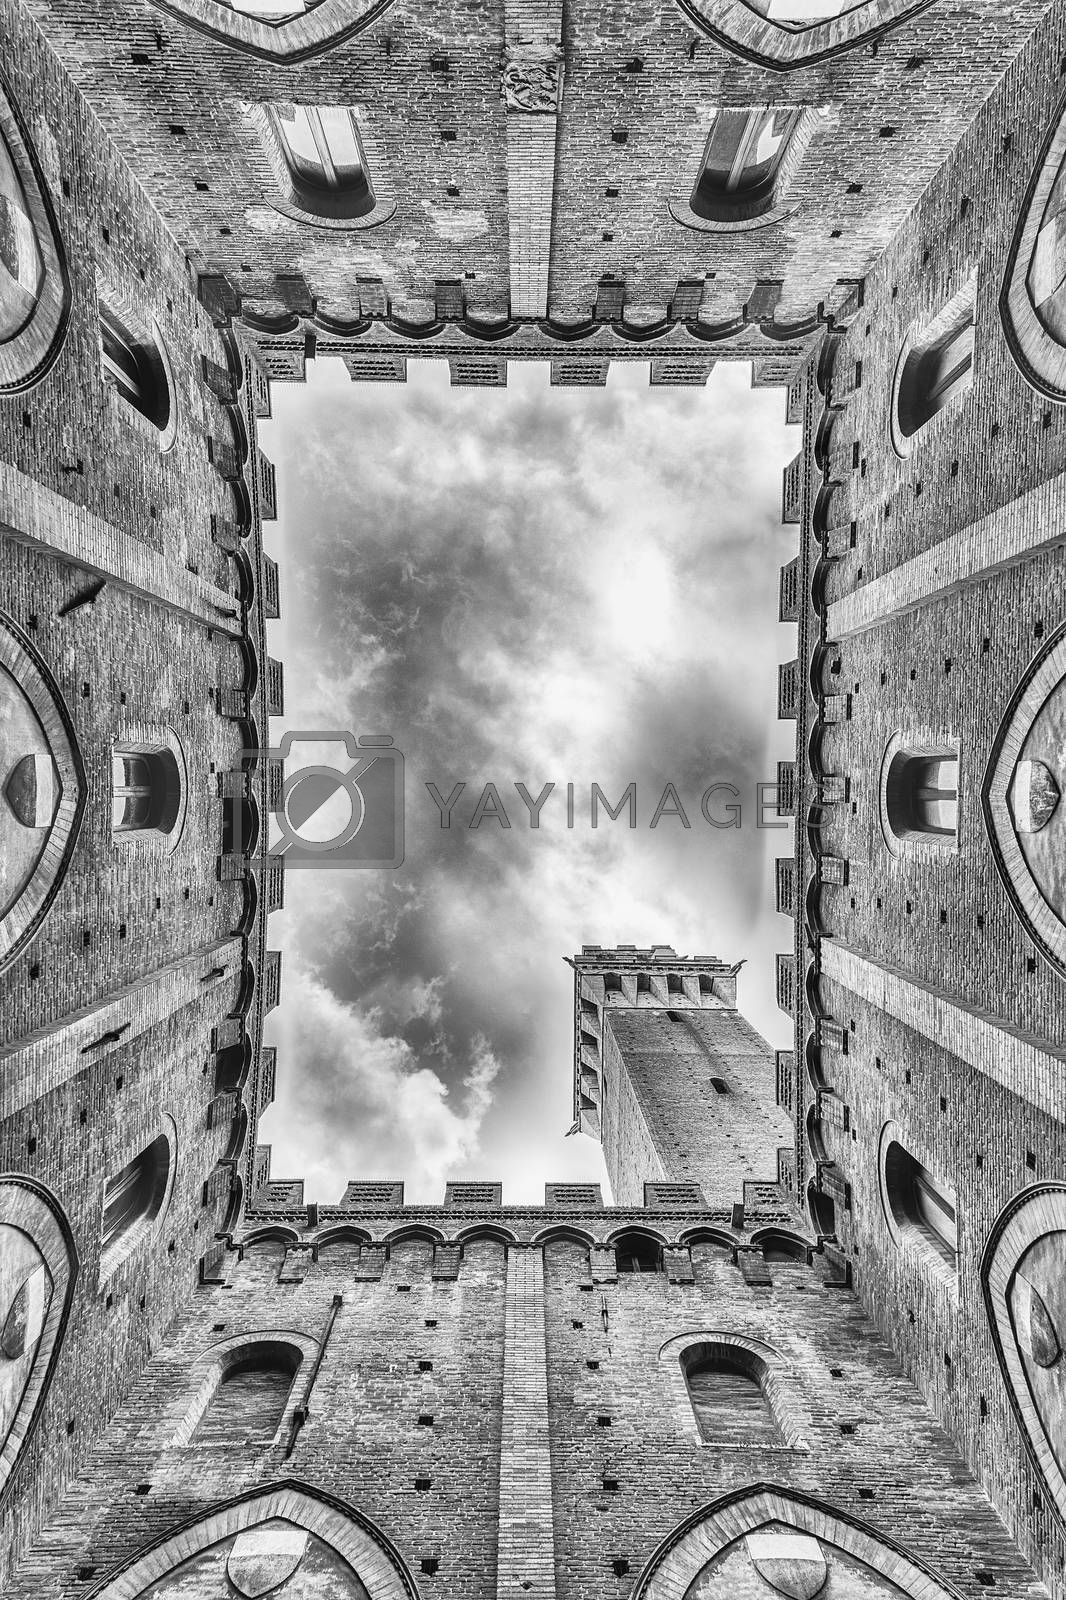 Scenic view from the bottom at the patio of Palazzo Pubblico, major landmark in Siena, Italy